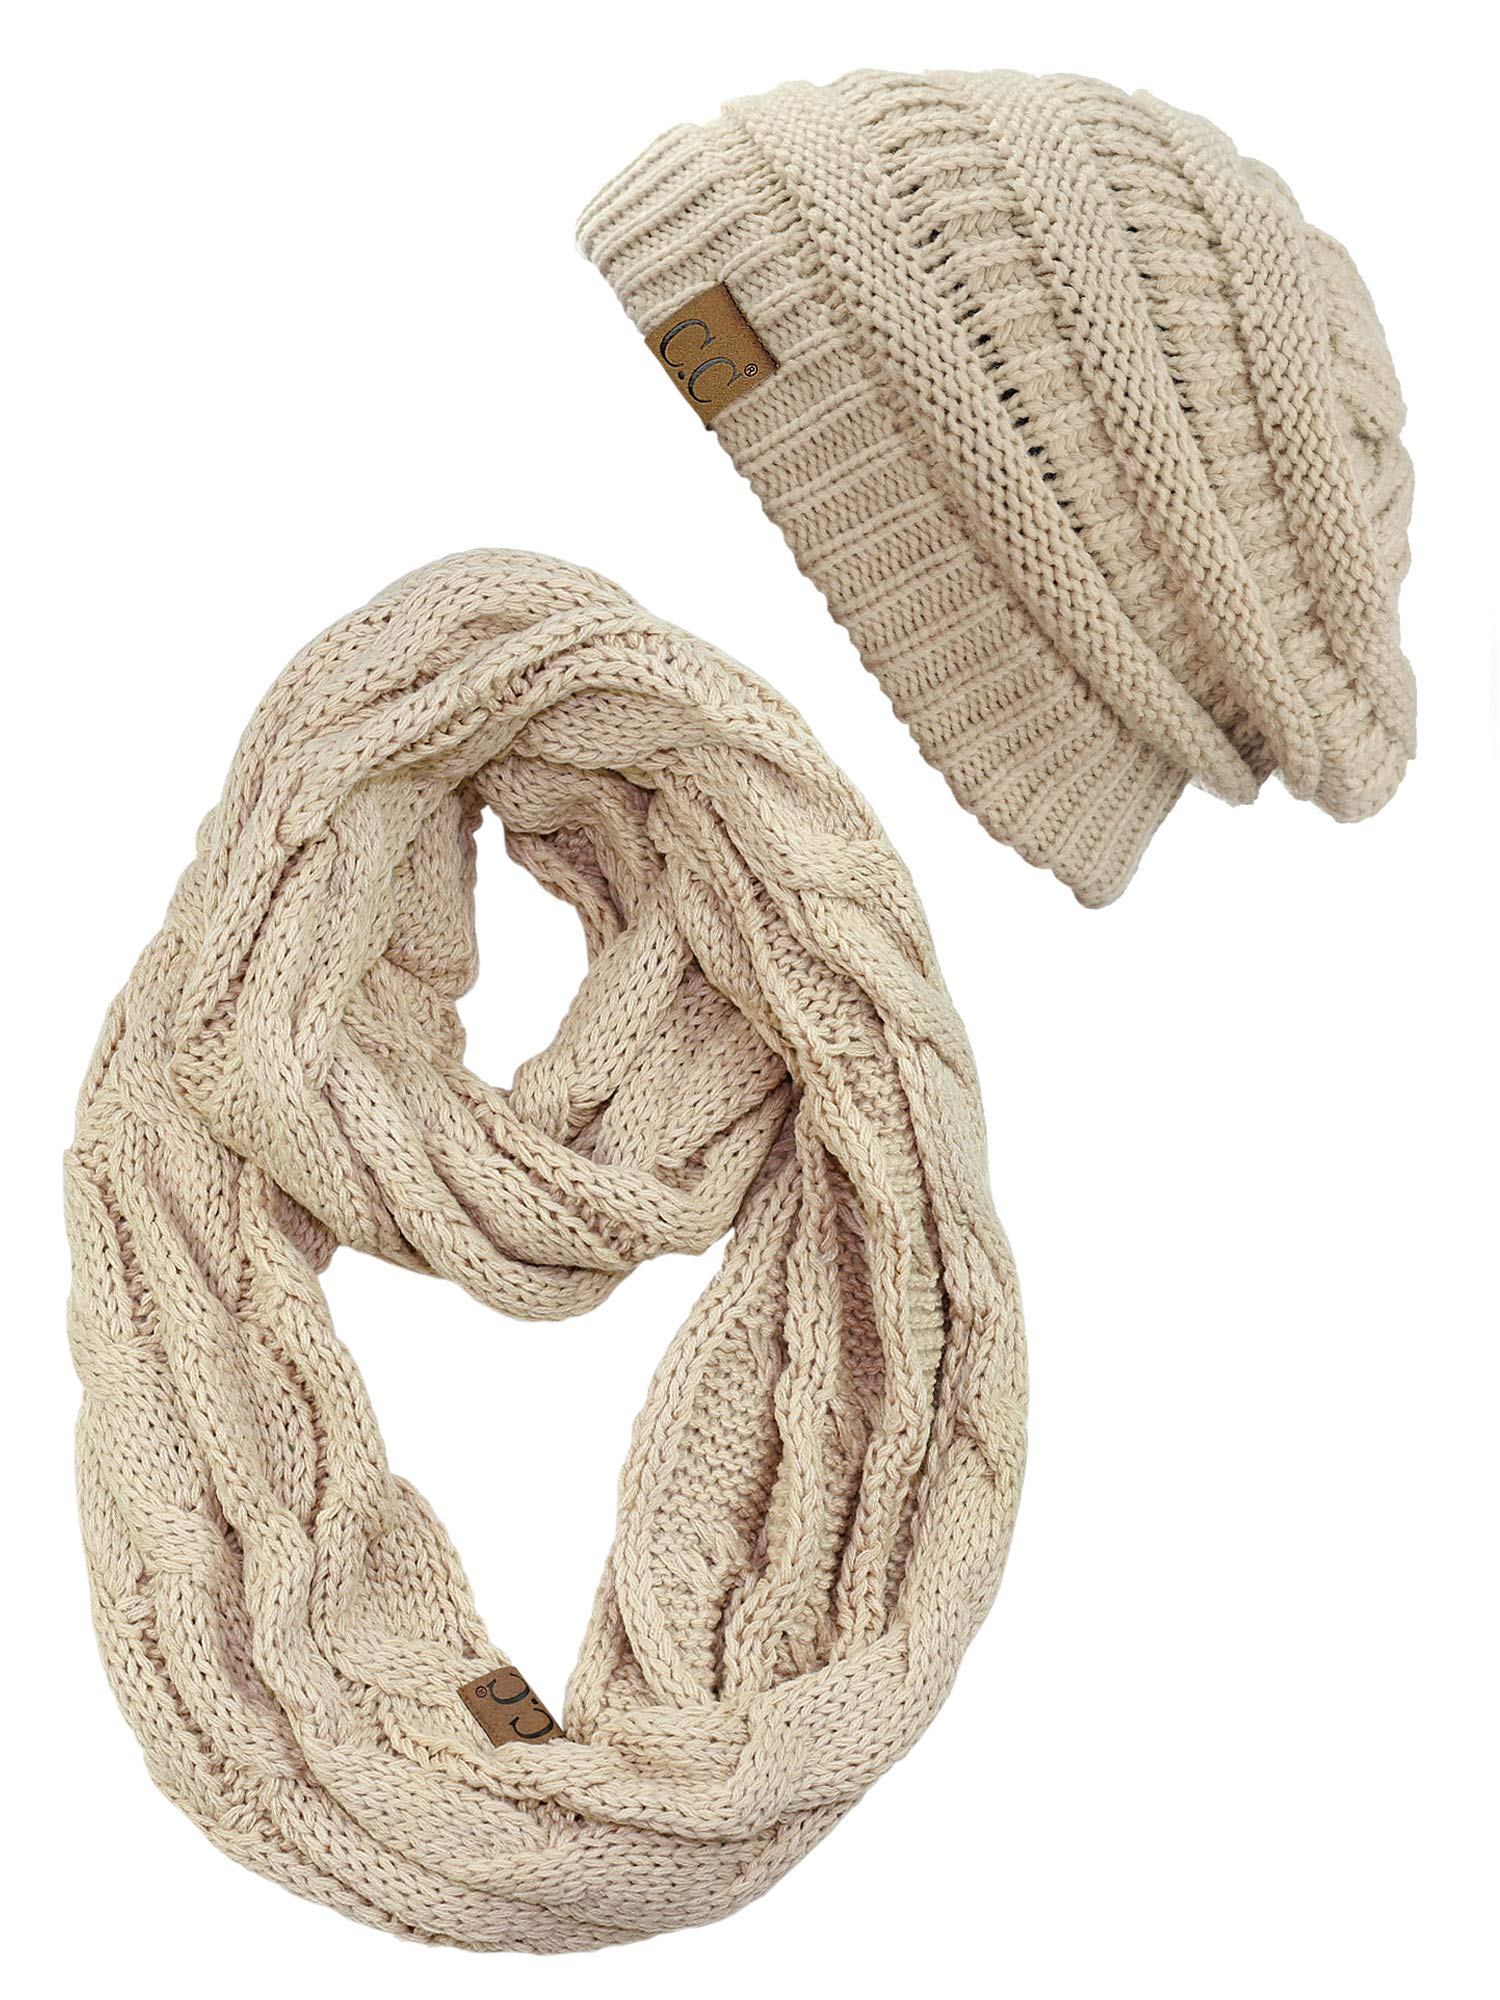 C.C Unisex Soft Stretch Chunky Cable Knit Beanie and Infinity Loop Scarf Set, Dark Beige